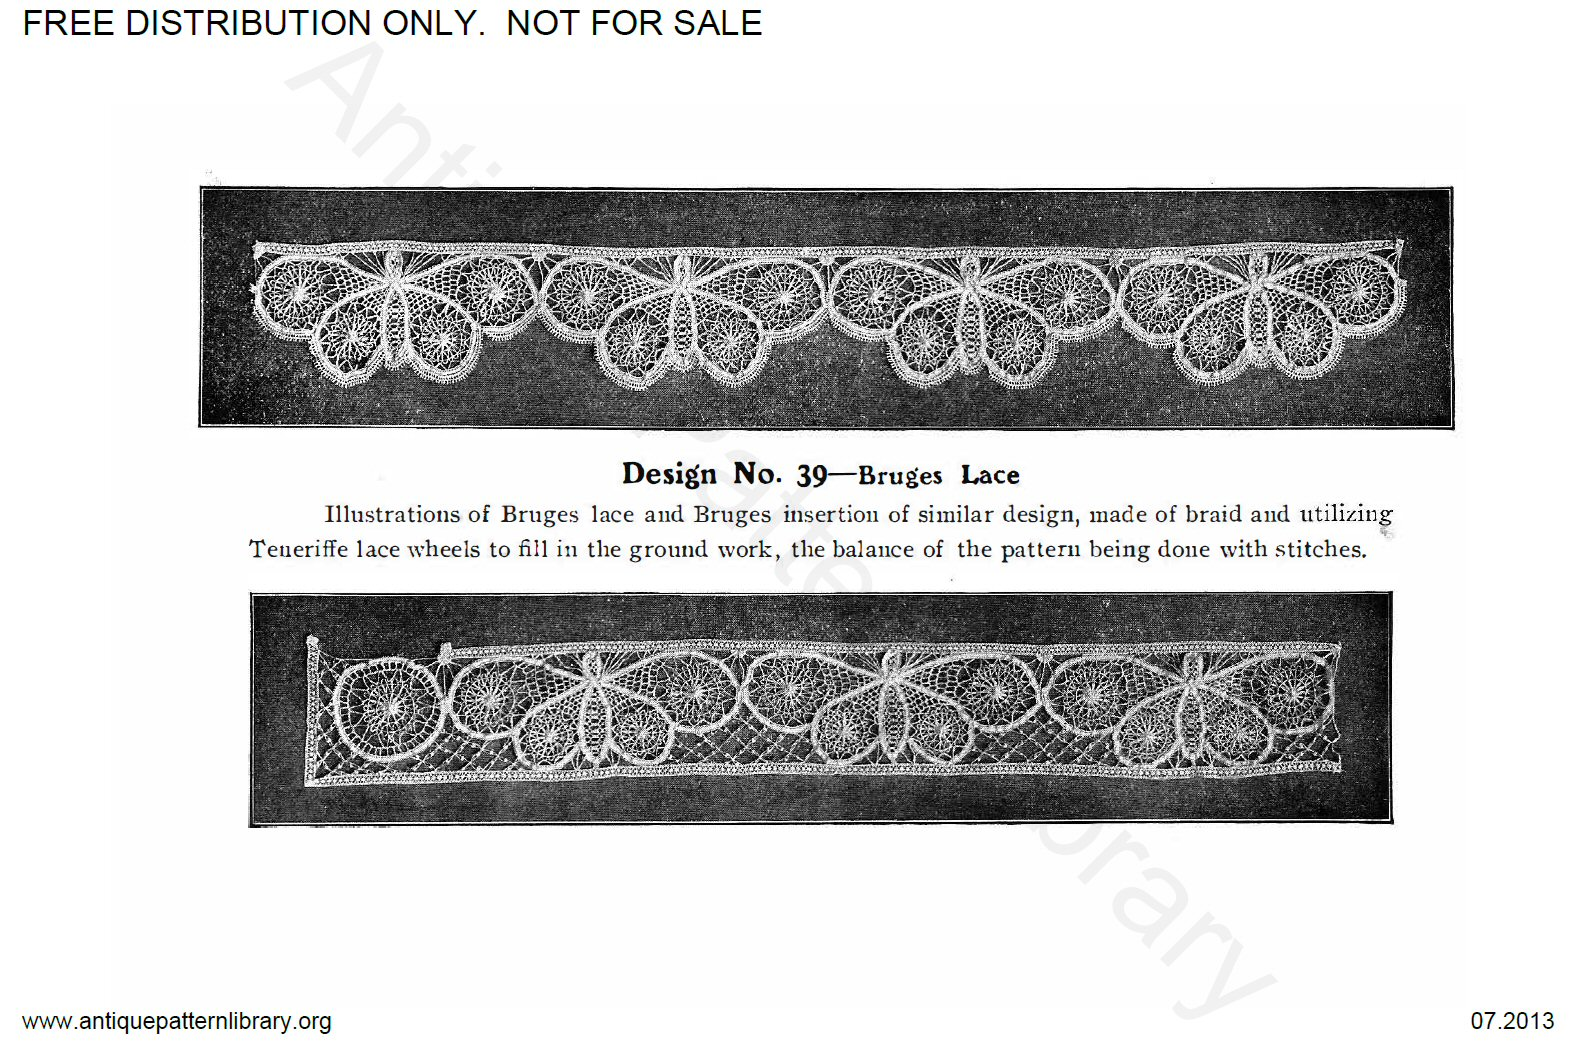 6-DS001 Teneriffe Lace Designs and Instructions.